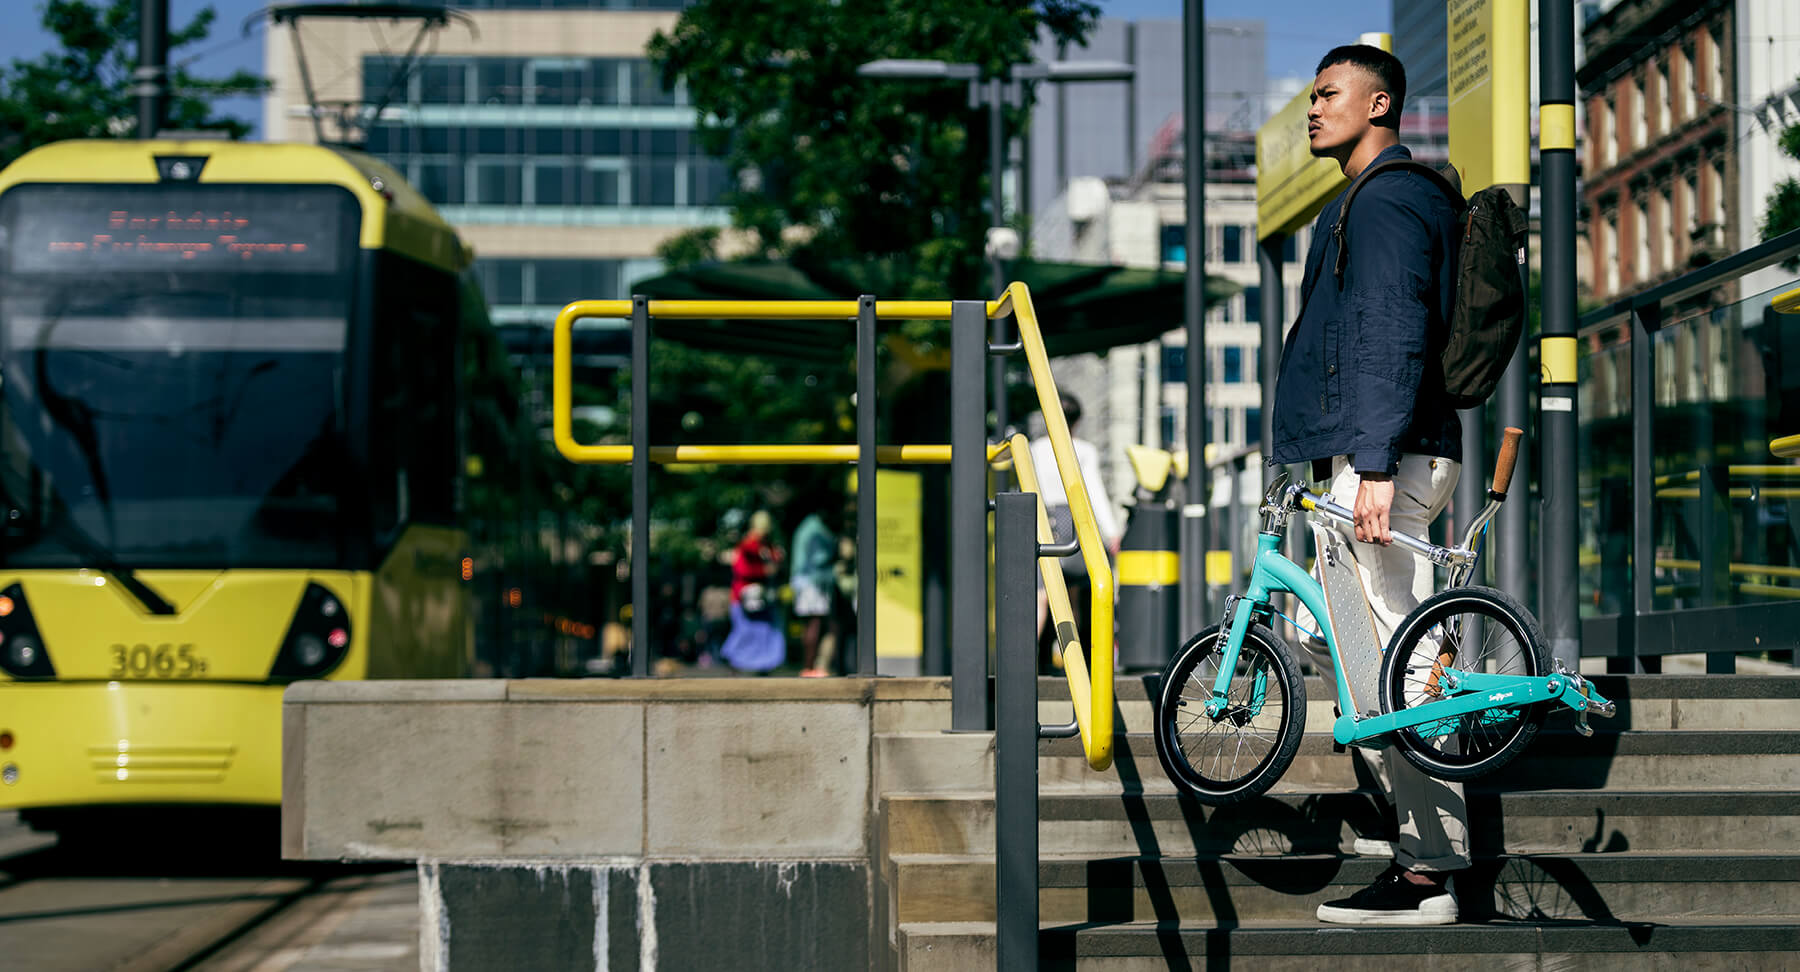 Commuters, folding bike or folding scooter?